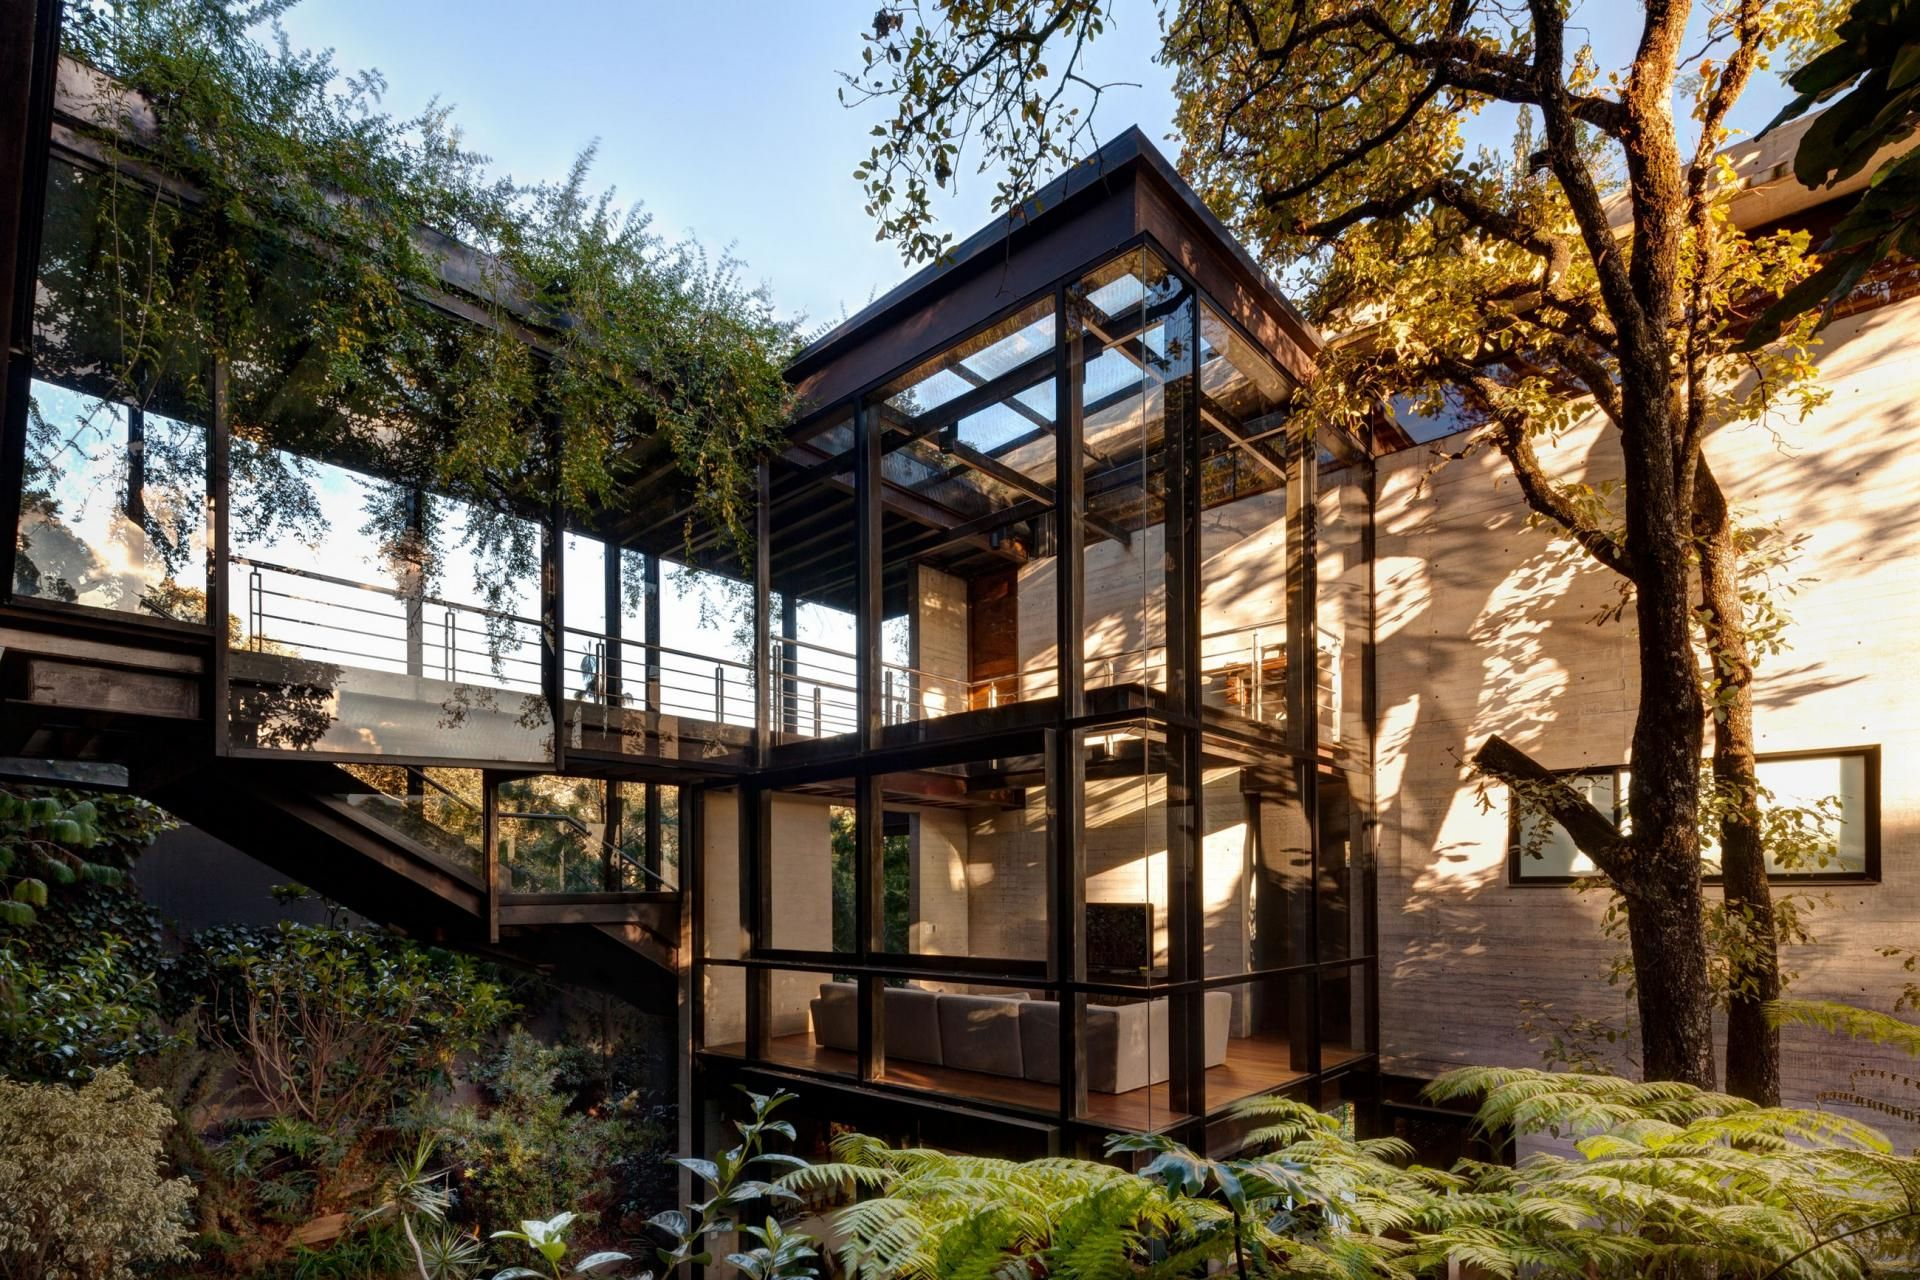 Marvelous Stunning House In The Trees Proves That Modern Design Can Live In Harmony  With Nature. Green HomesGreen ...